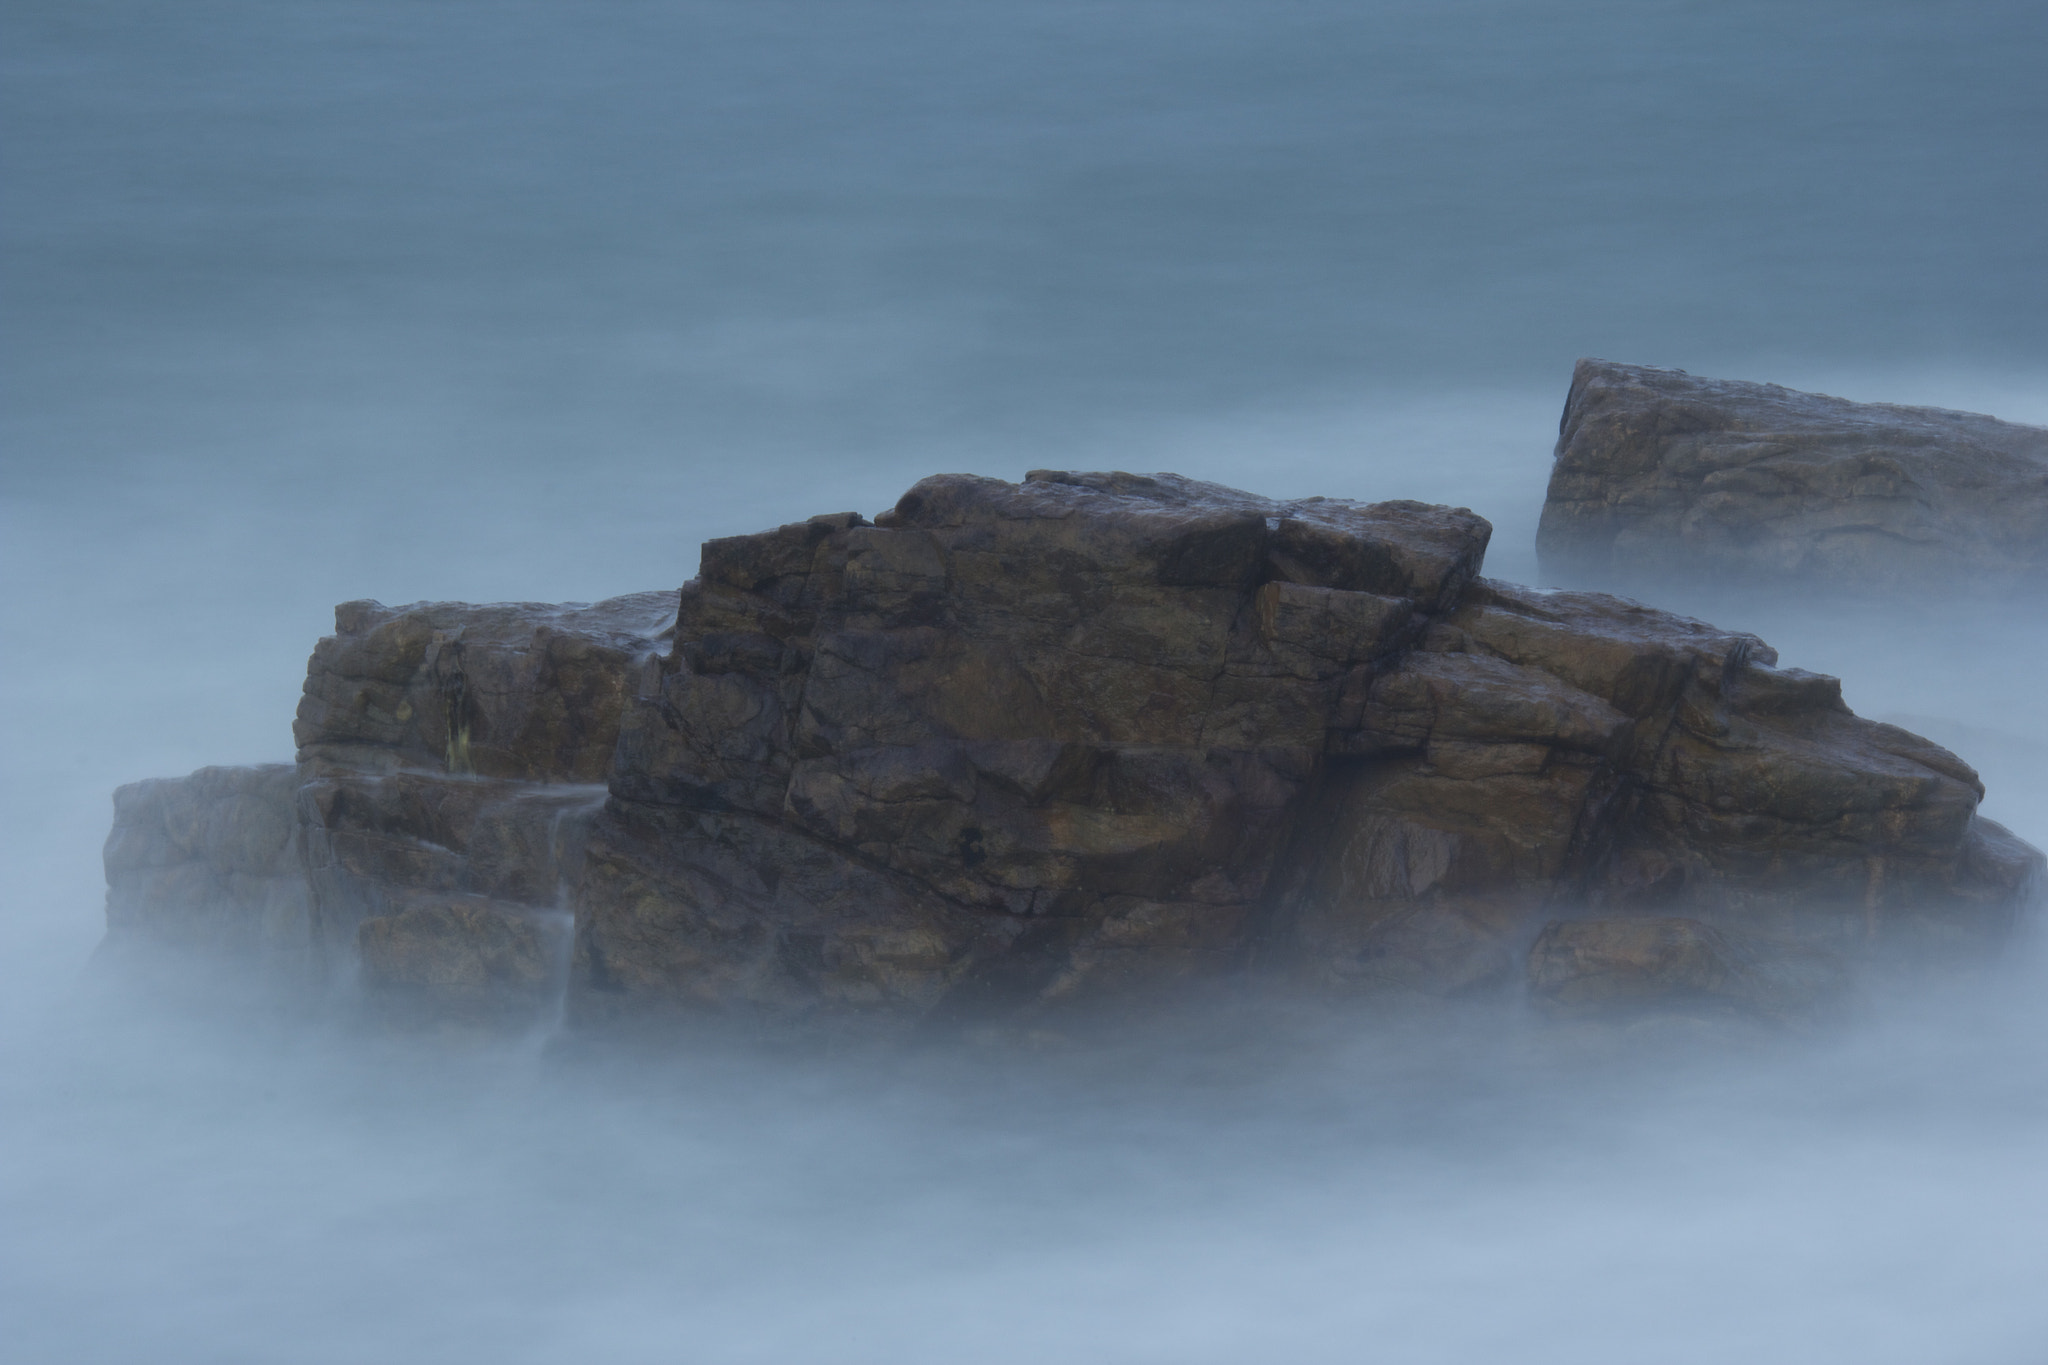 Photograph Lonely Rocks 1 by olivier cosson on 500px